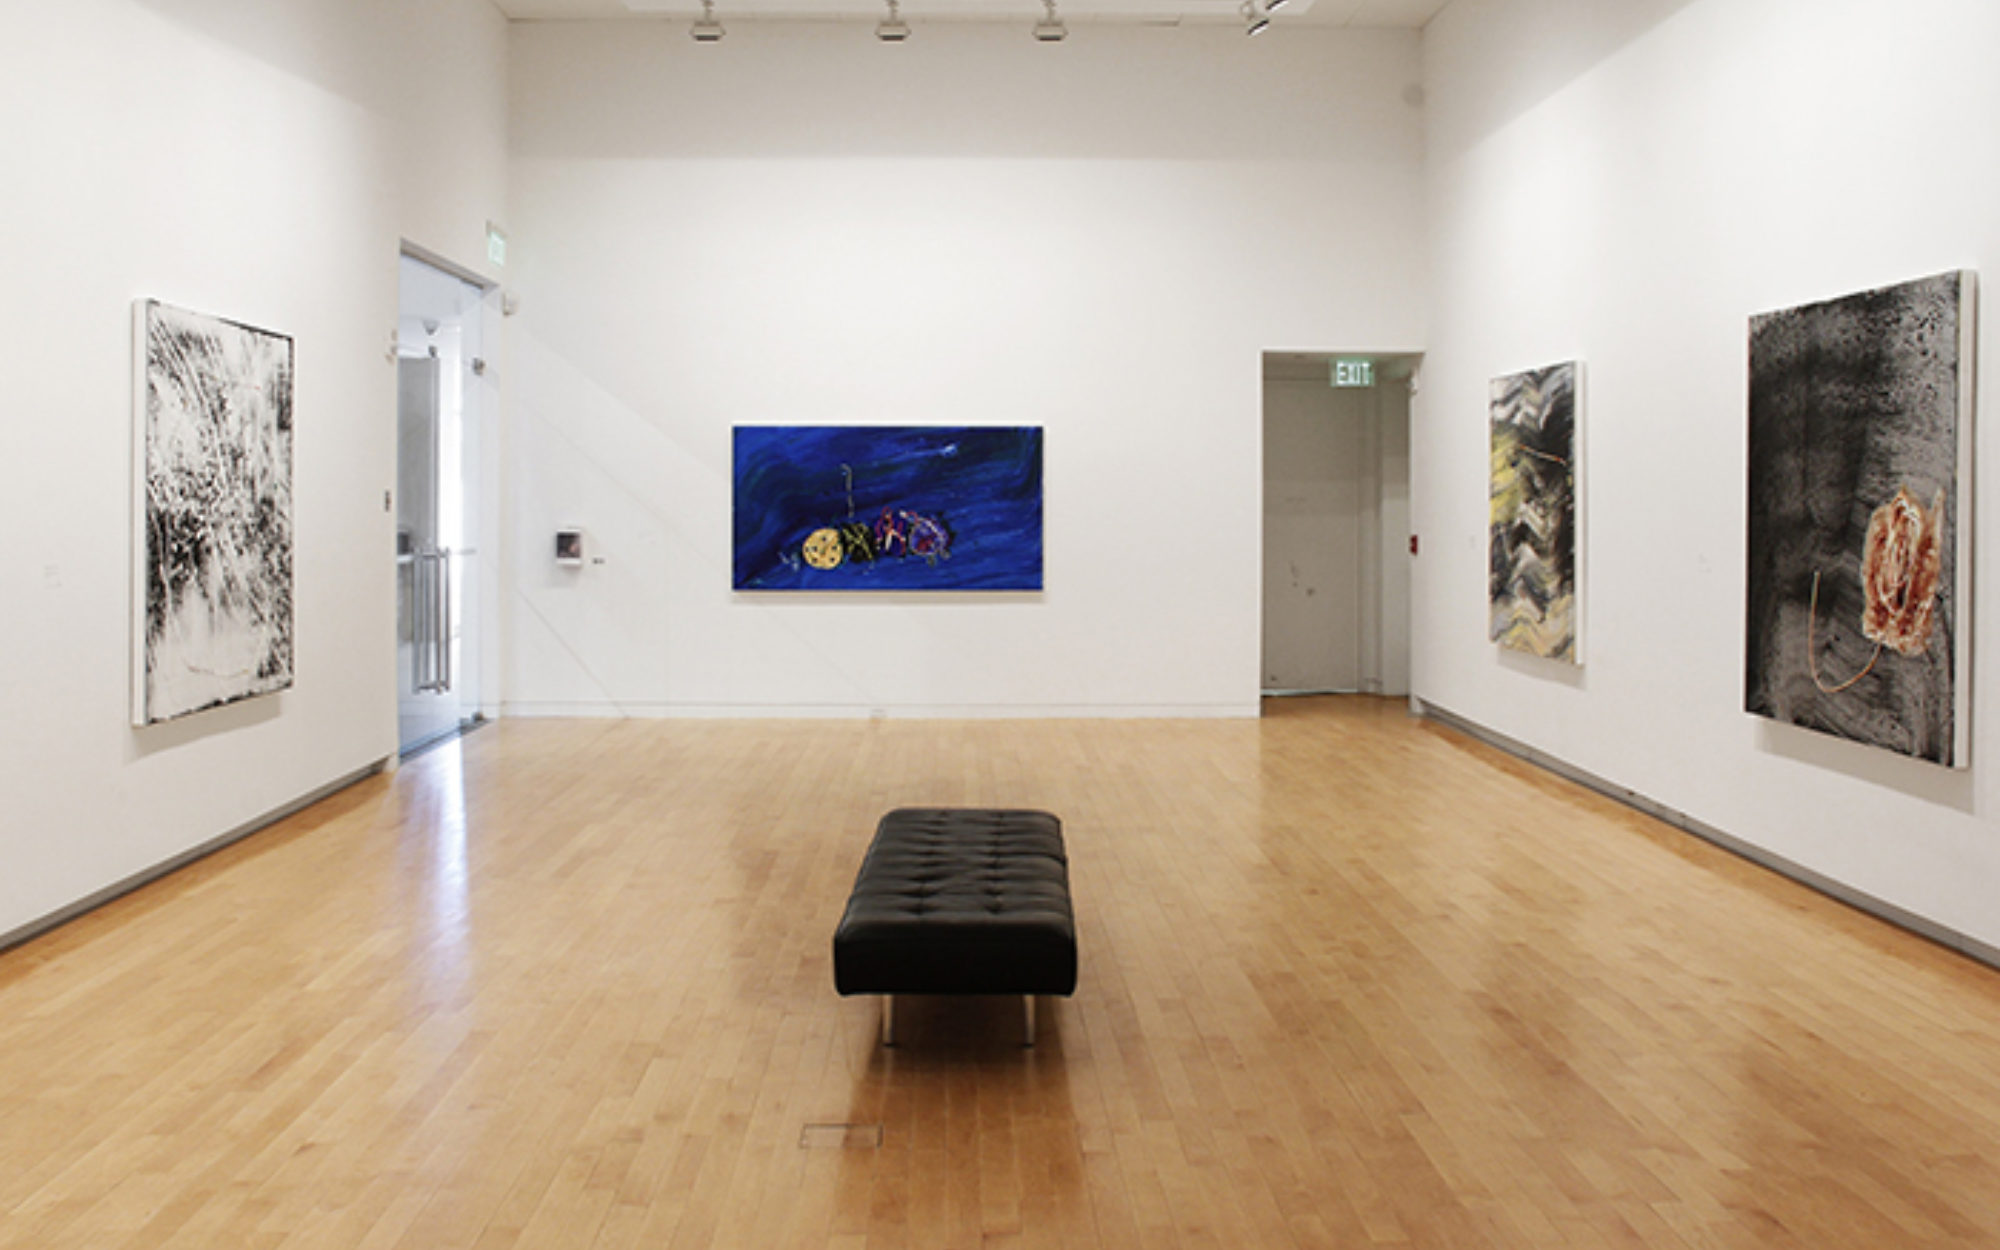 Jack Whitten's artwork hangs on the gallery walls, small black bench sits in the middle of the room